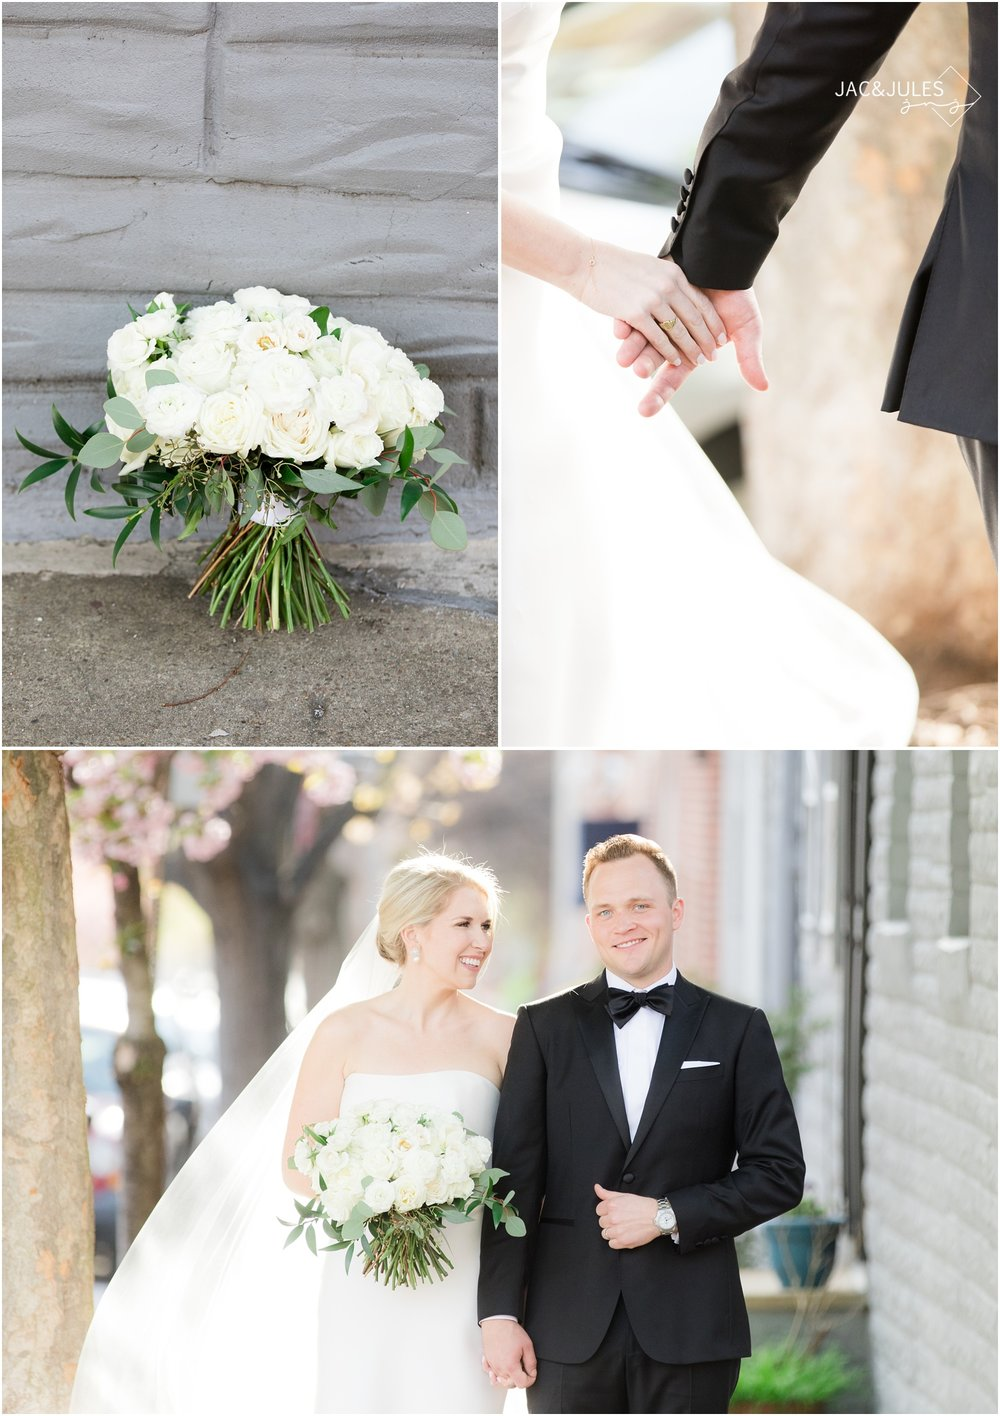 Romantic wedding photos on cherry blossom lined street in downtown Baltimore, MD.